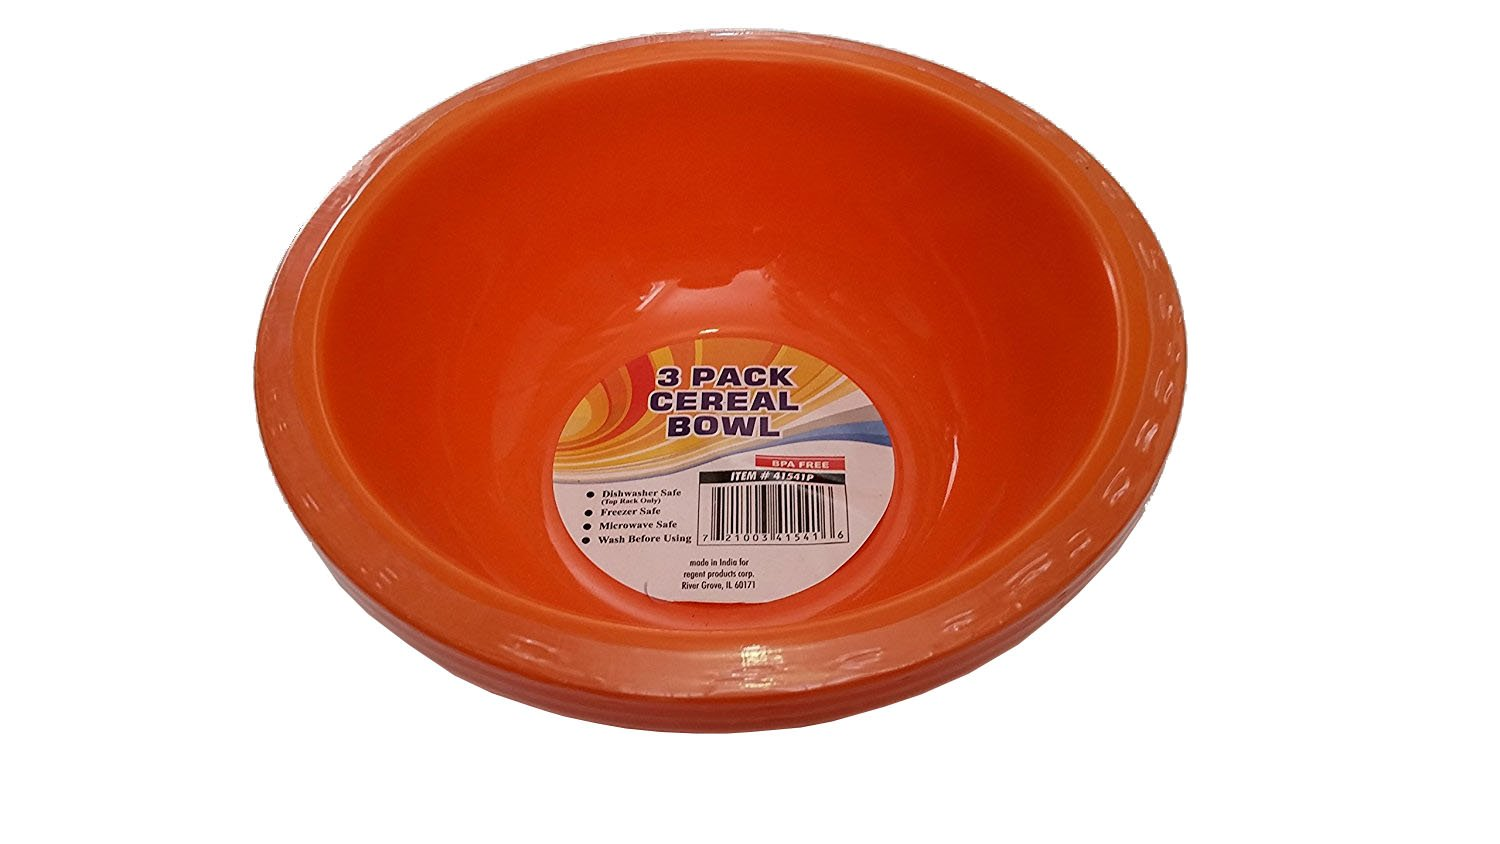 3 pack 7 inch Plastic Cereal Bow